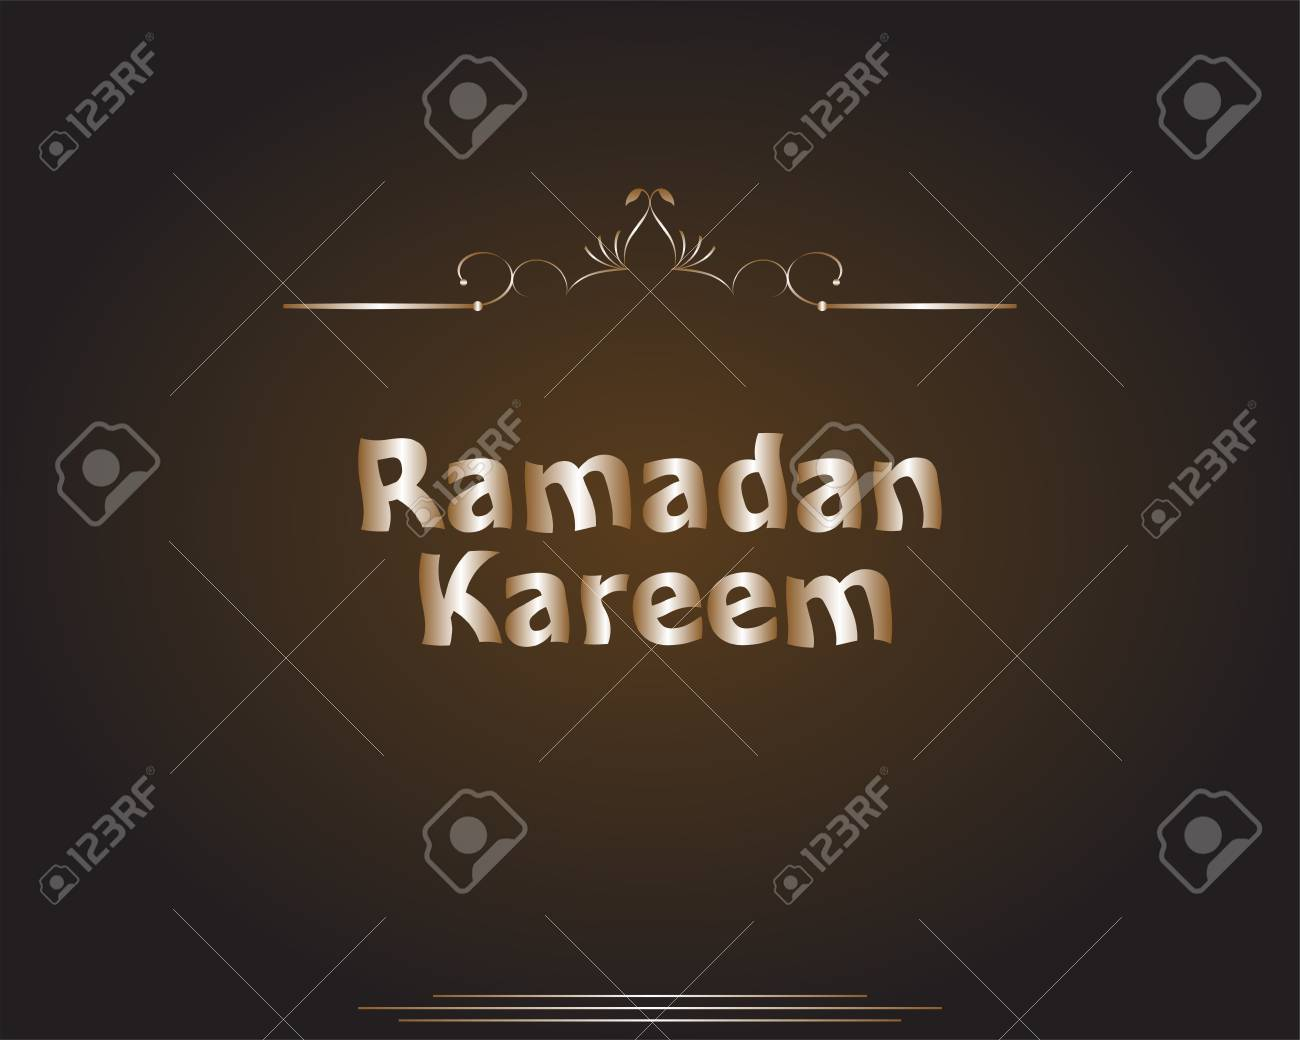 Islamic greeting arabic text for holy month ramadan kareem stock islamic greeting arabic text for holy month ramadan kareem stock photo 41902569 m4hsunfo